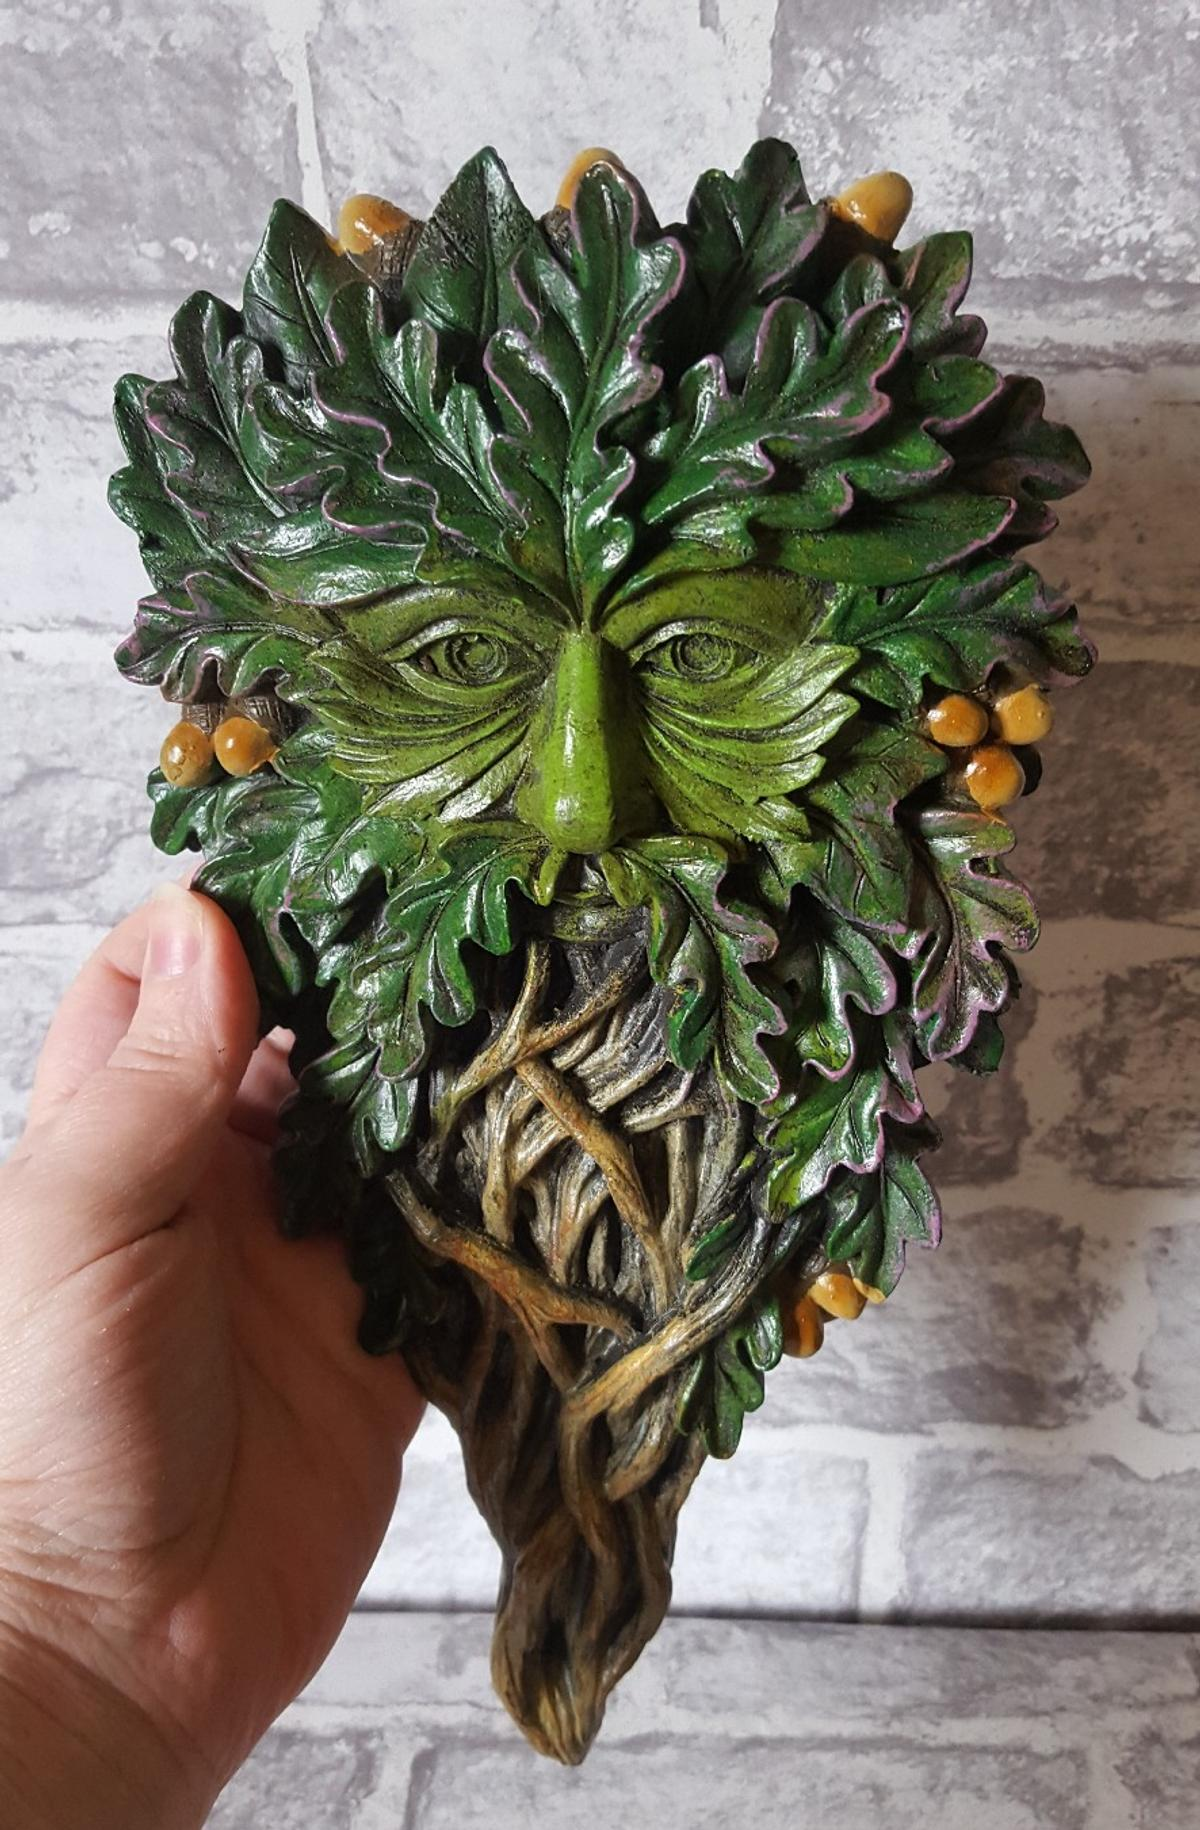 Beautifully crafted Tree Spirit Green man Wall Plaque 💚🌳🍃  Cast in the finest resin 🌱  Painstakingly hand-painted 💚  Size 29cm  £11 Collection (B37) £14 Includes UK p&p  BRAND NEW IN BOX NO OFFERS WILL NOT KEEP ON HOLD